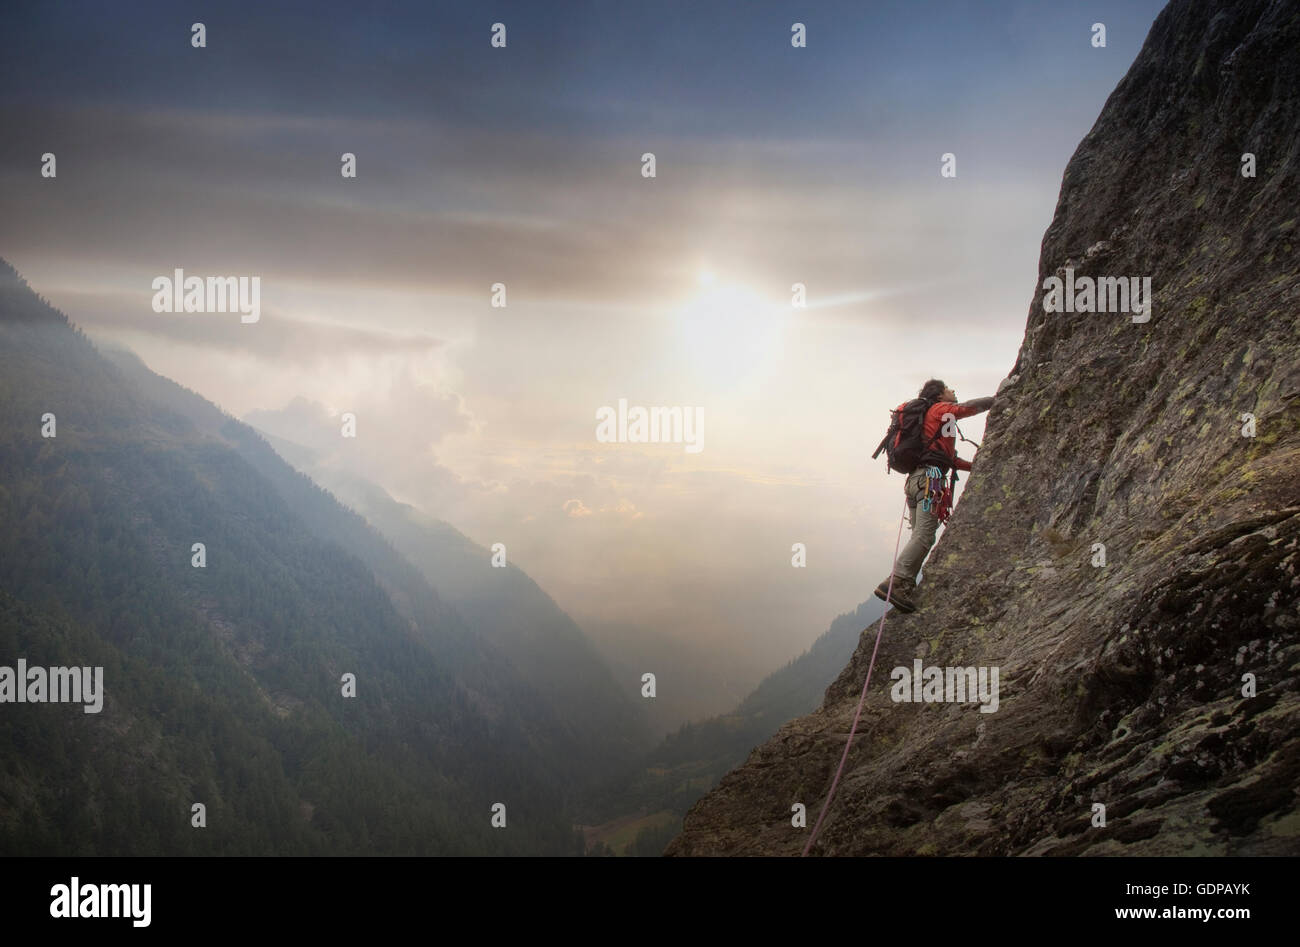 Climber on a rocky wall above a valley, Alps, Canton Bern, Switzerland Stock Photo